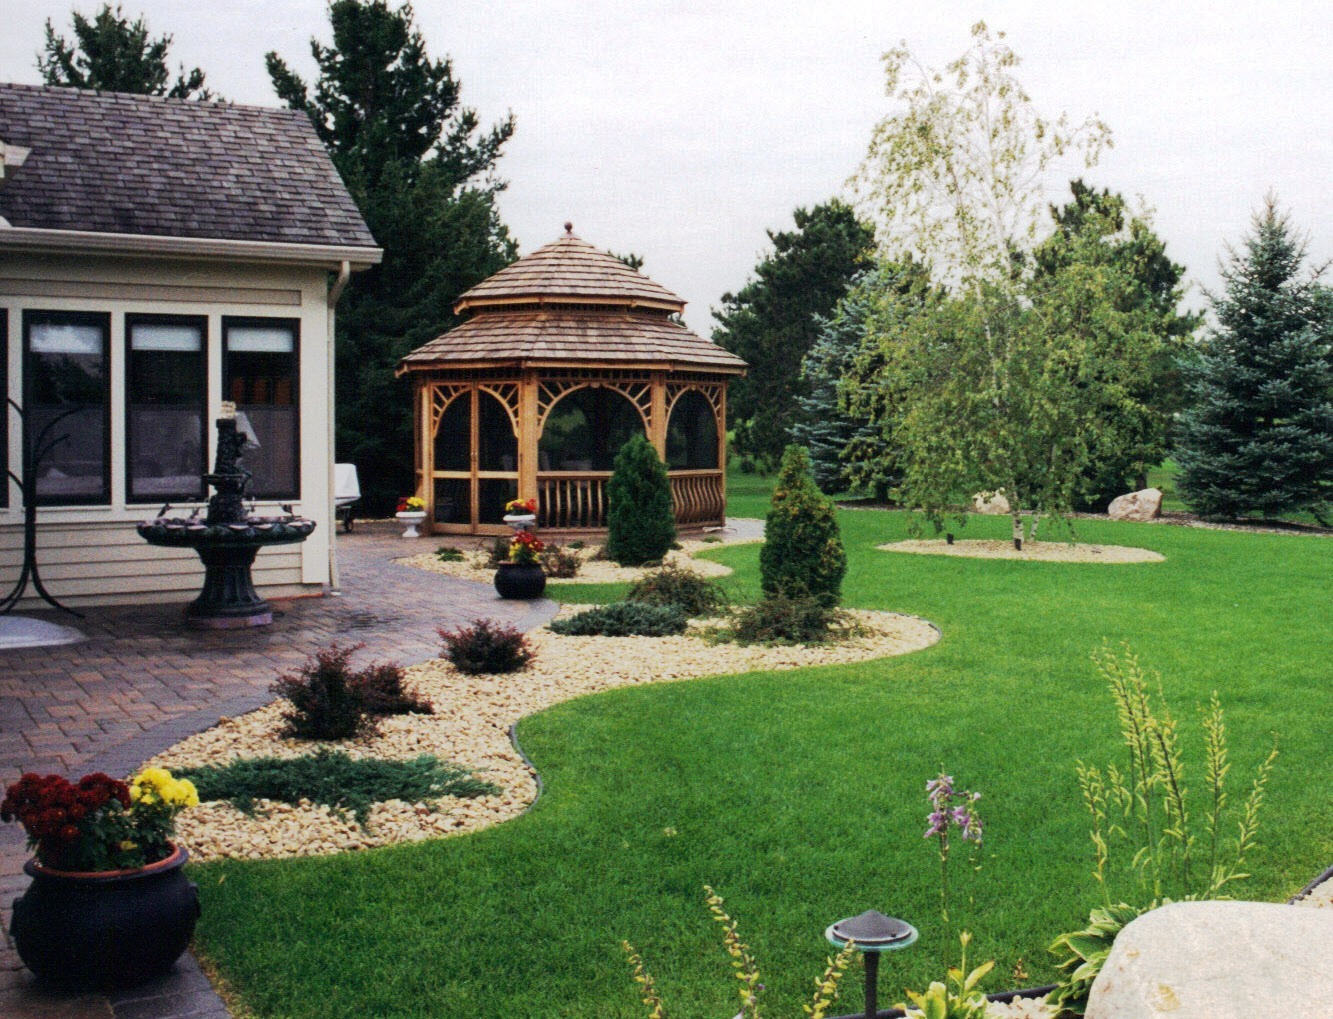 Paver Patio, Gazebo and Complete Landscape